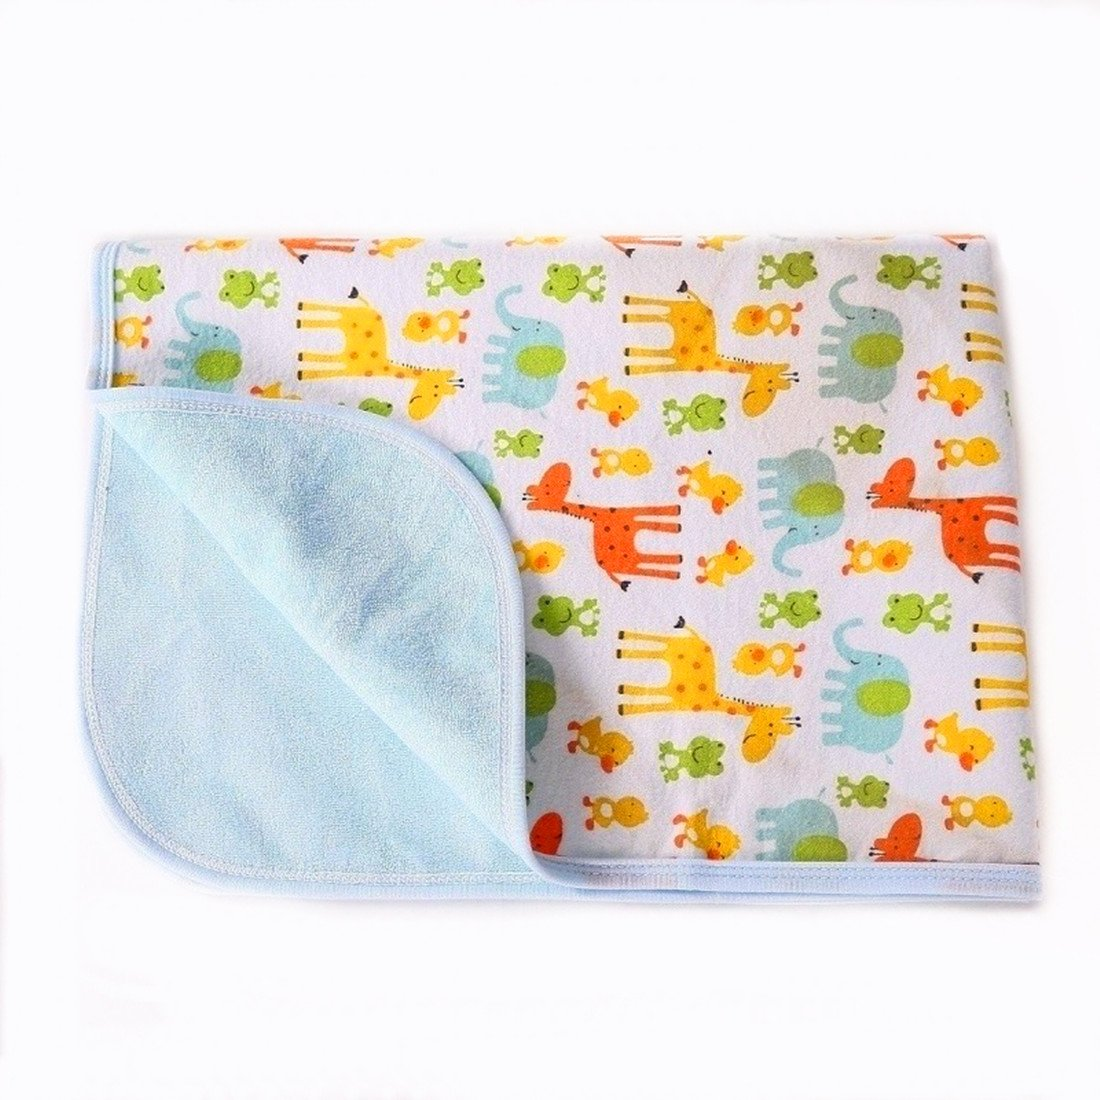 Portable Changing Pad Waterproof Diaper Change Mat Large Size Multi-function [Home & Travel] Mat Any Places Bed Play Stroller Crib Car Mattress Pad Cover (Frog & Giraffe, XL (27.56 x 47.2 Inch) JIAYUN